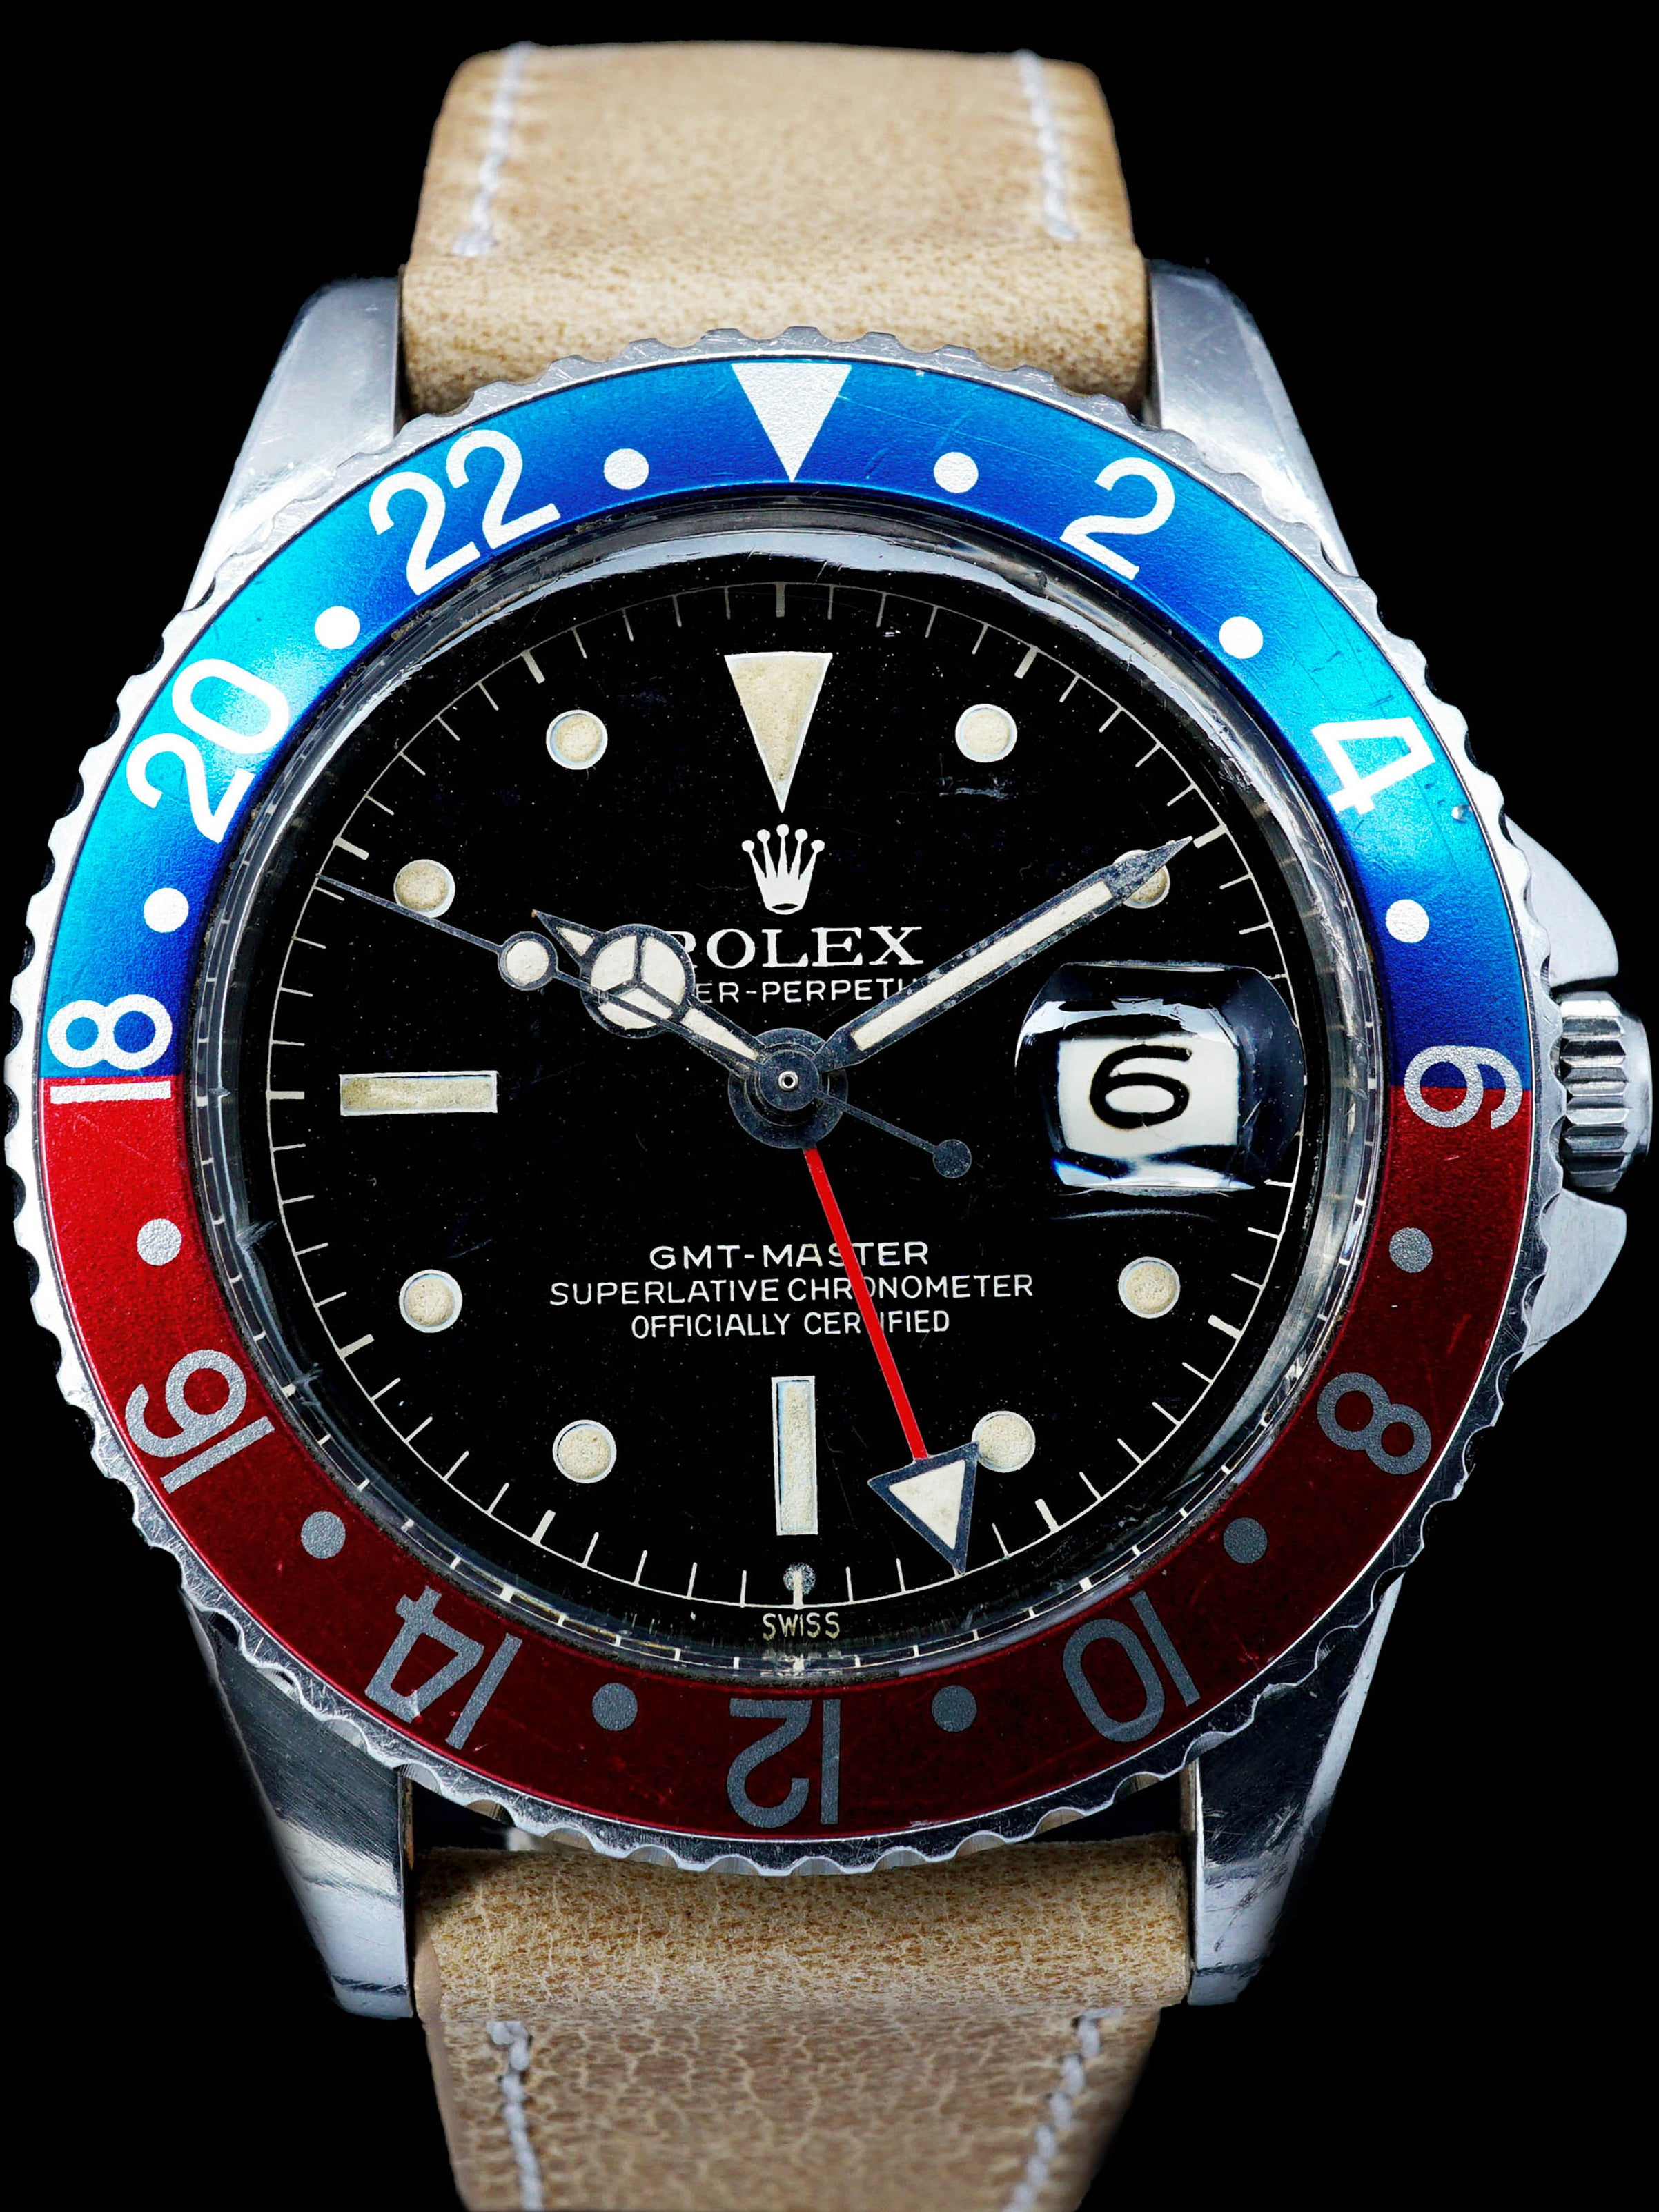 1960 Rolex GMT-Master 1675 with Pointed Crown Guard Case, Gilt Exclamation Dial